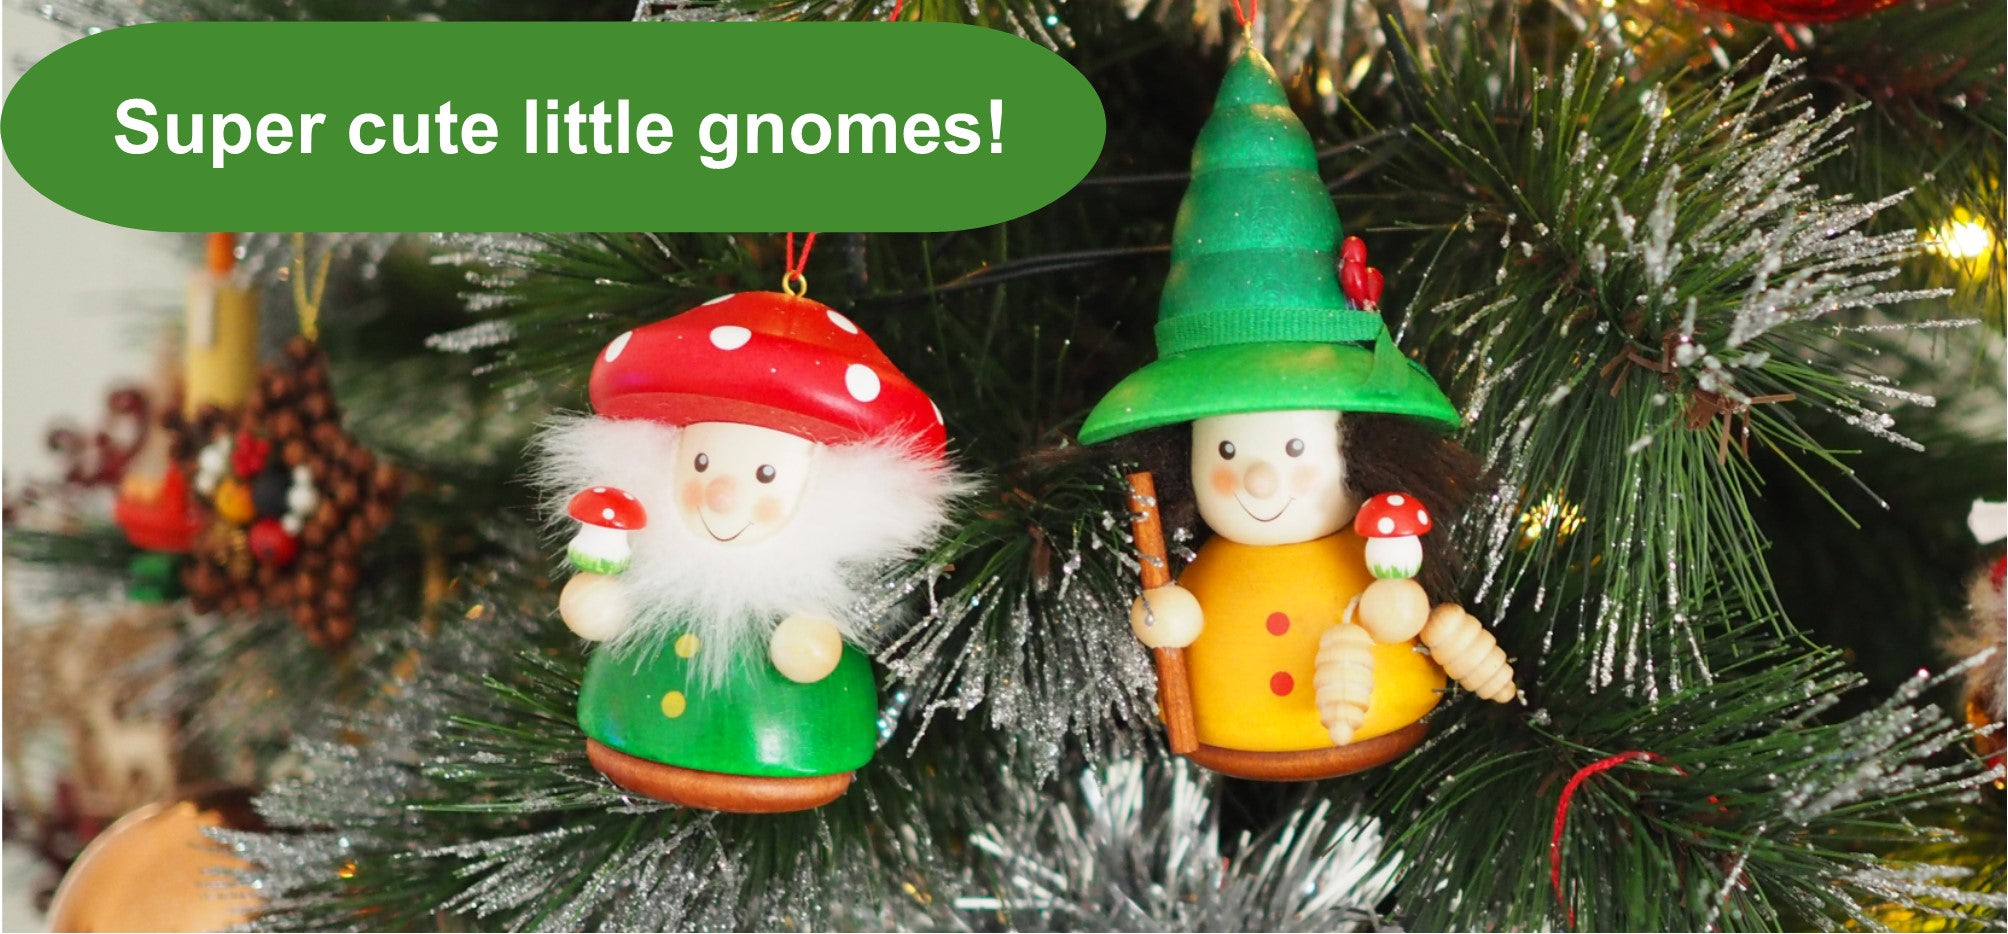 Cute gnomes for decorating a Christmas tree or decor 79